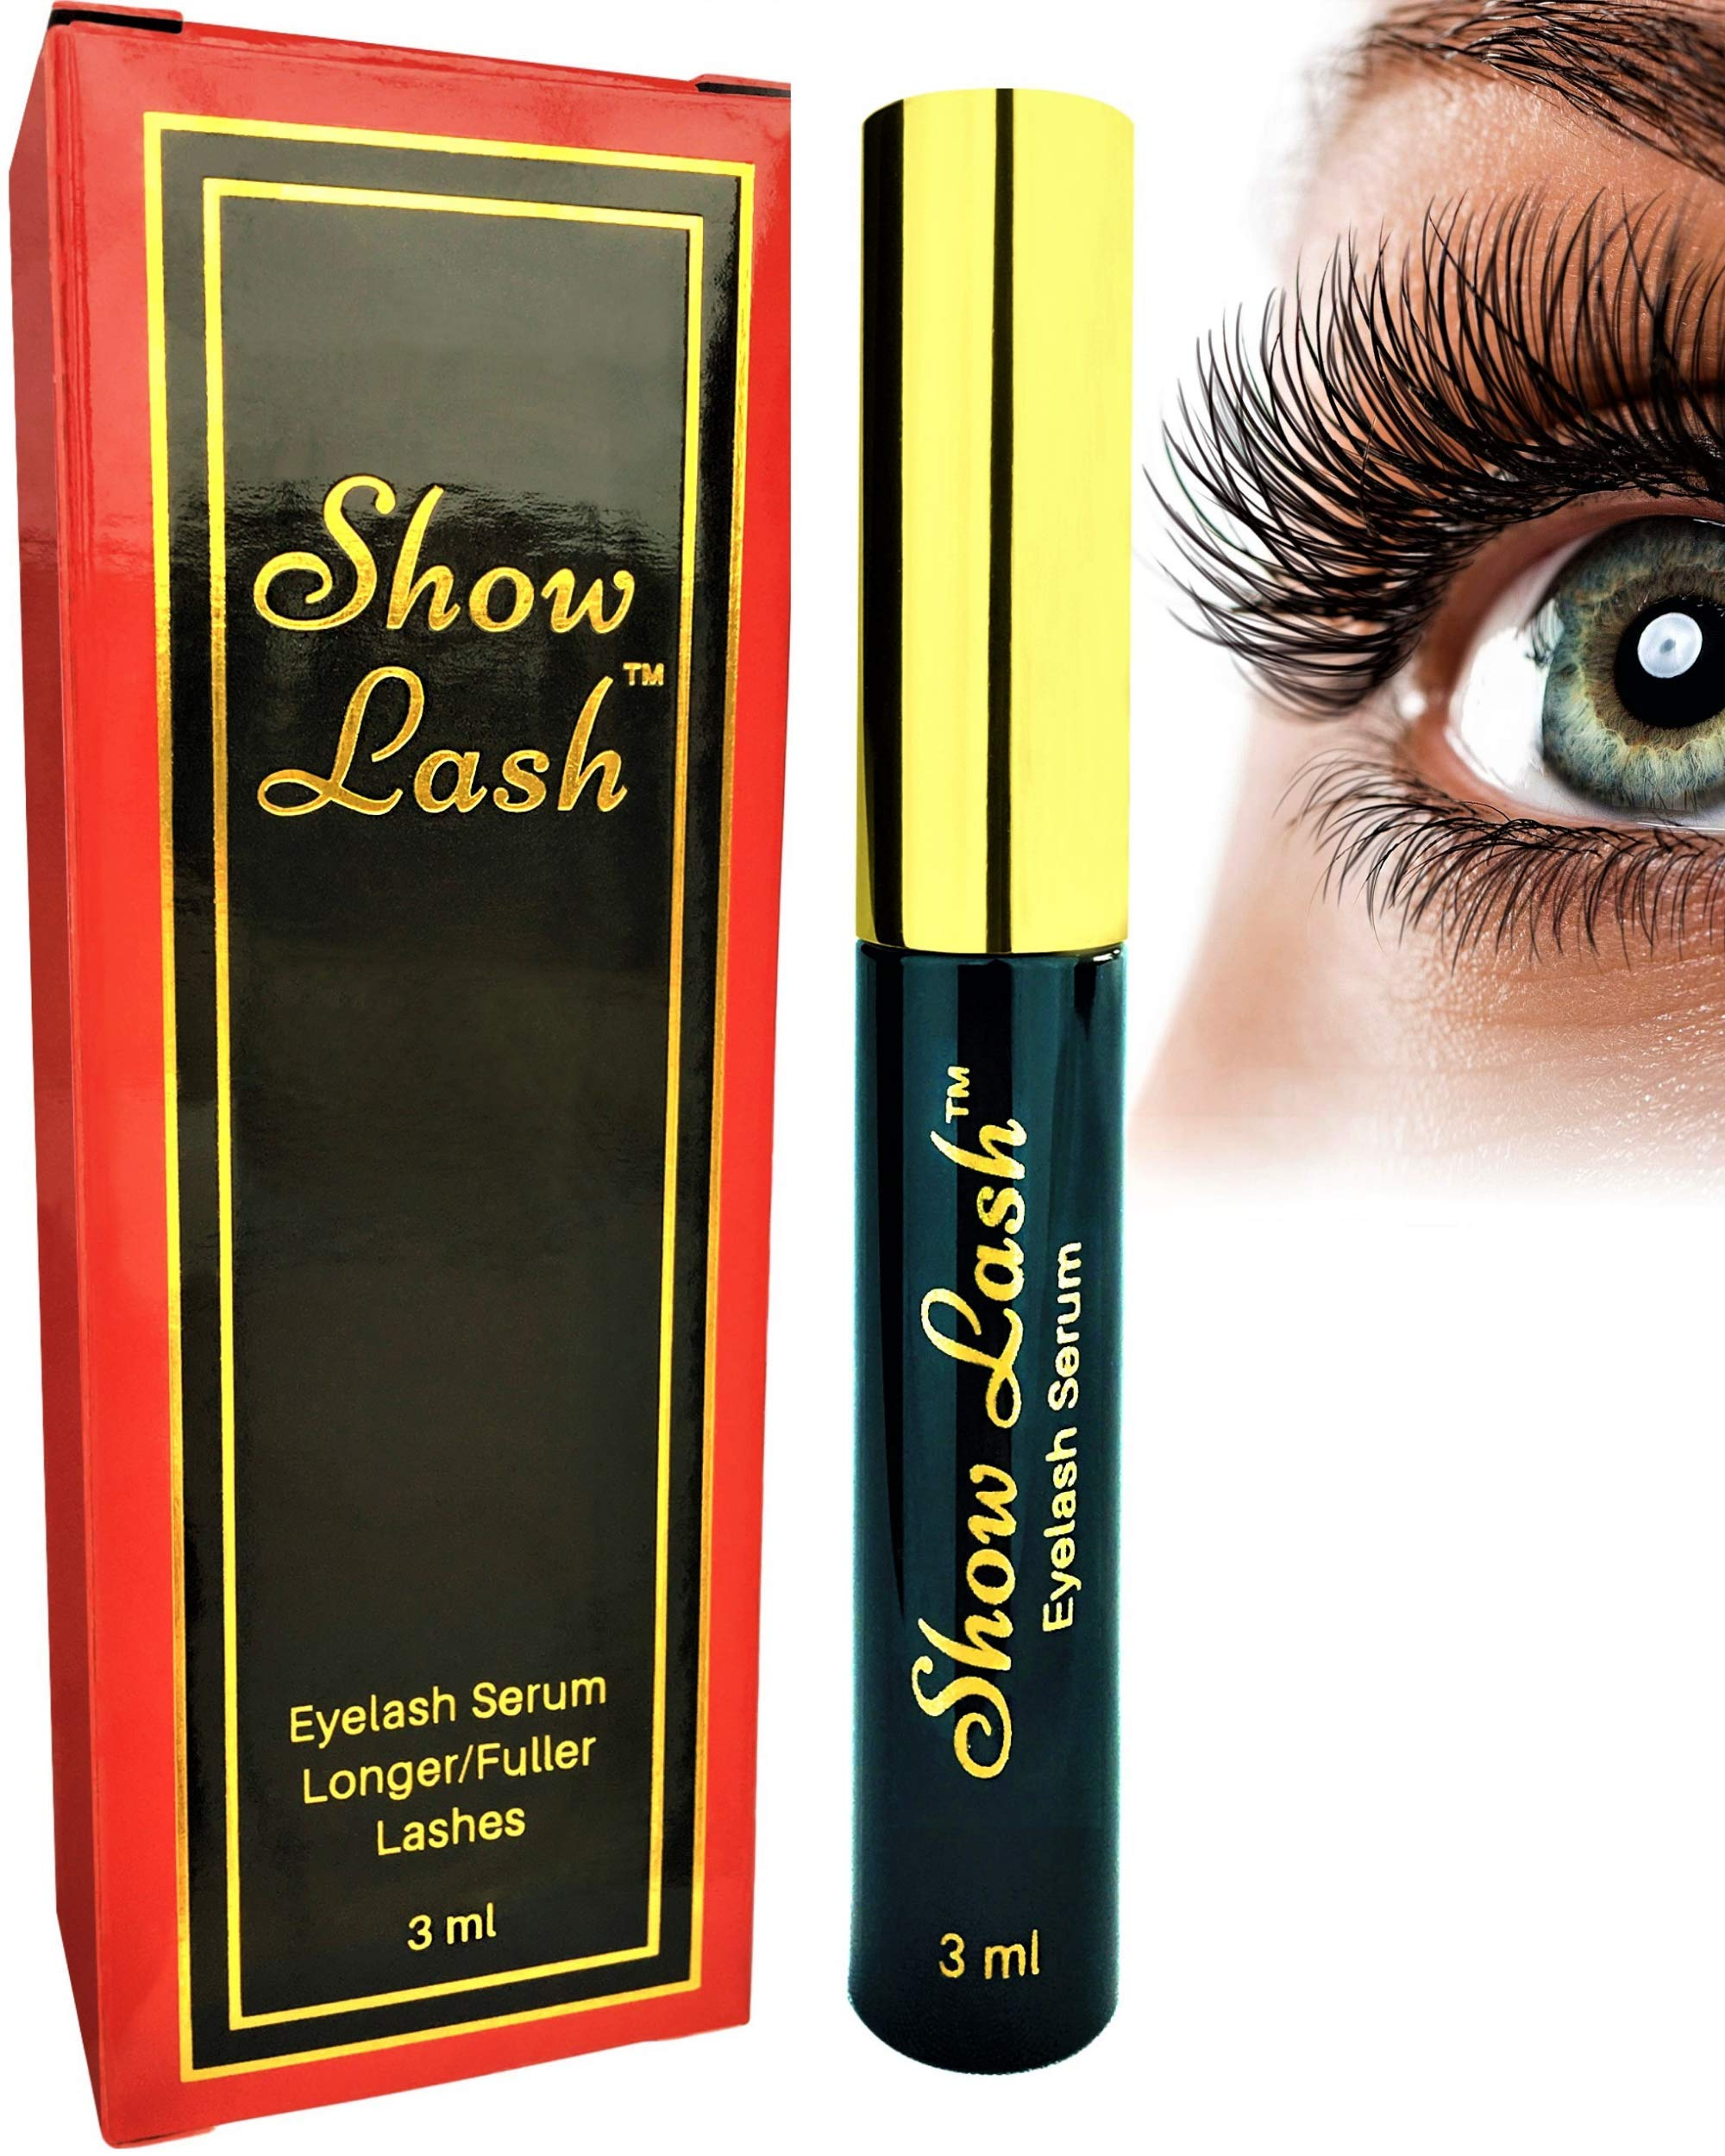 Show Lash - Premium Eyelash and Eyebrow Growth Enhancing Serum for Longer, Thicker, Gorgeous Lashes. The Most Powerful Lash Boosting Serum Without a Prescription. Clinically Proven. by LeVaye' (Image #1)